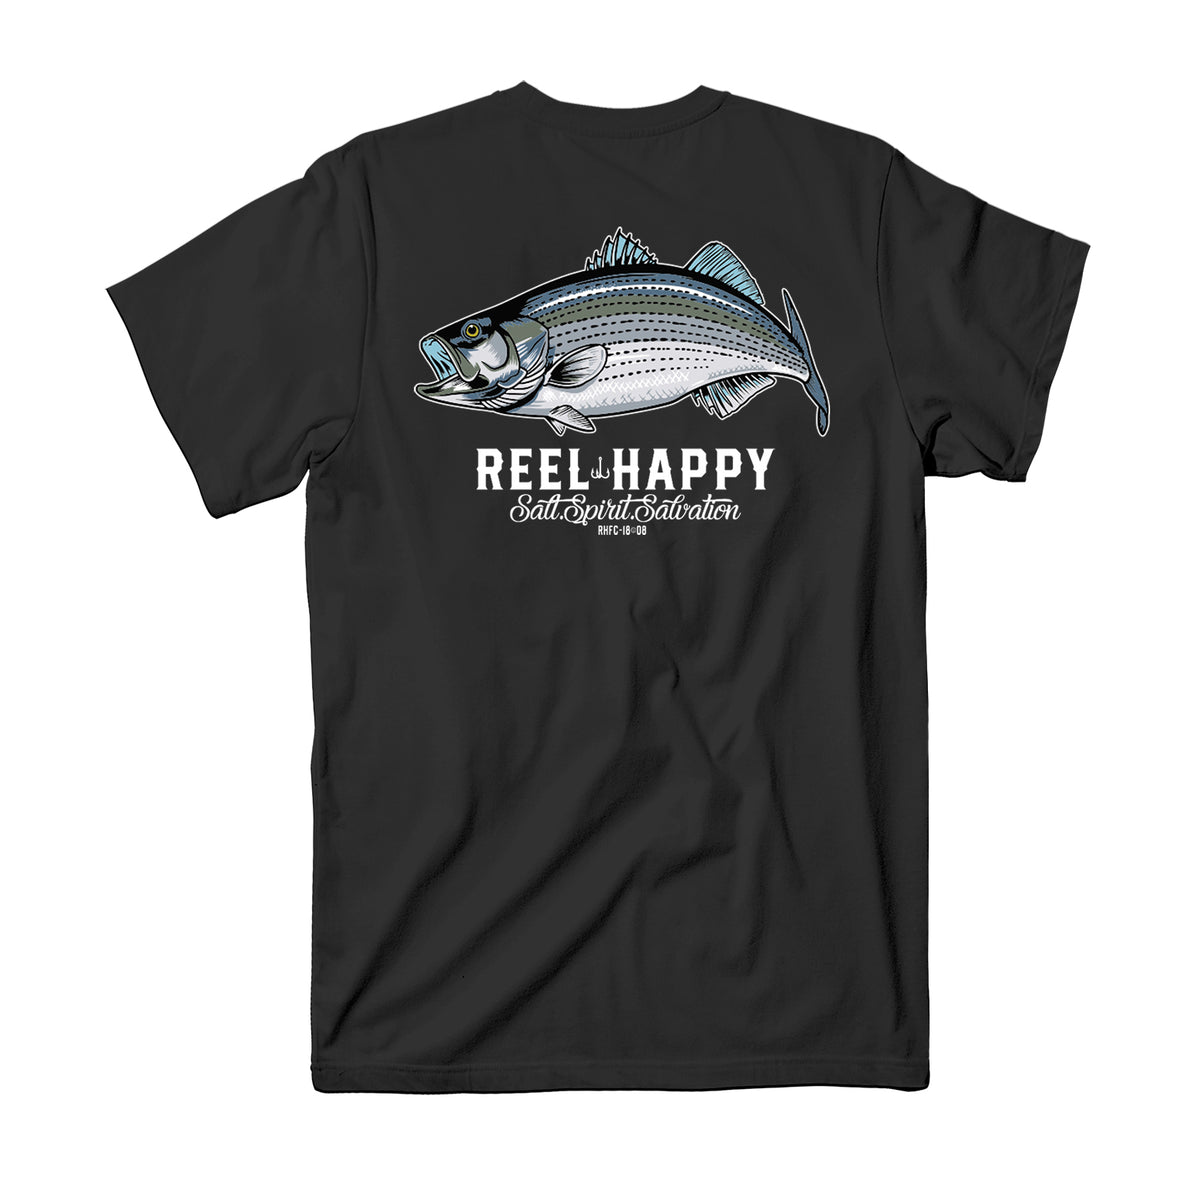 Striper Pocket T-Shirt - Black - Reel Happy Co